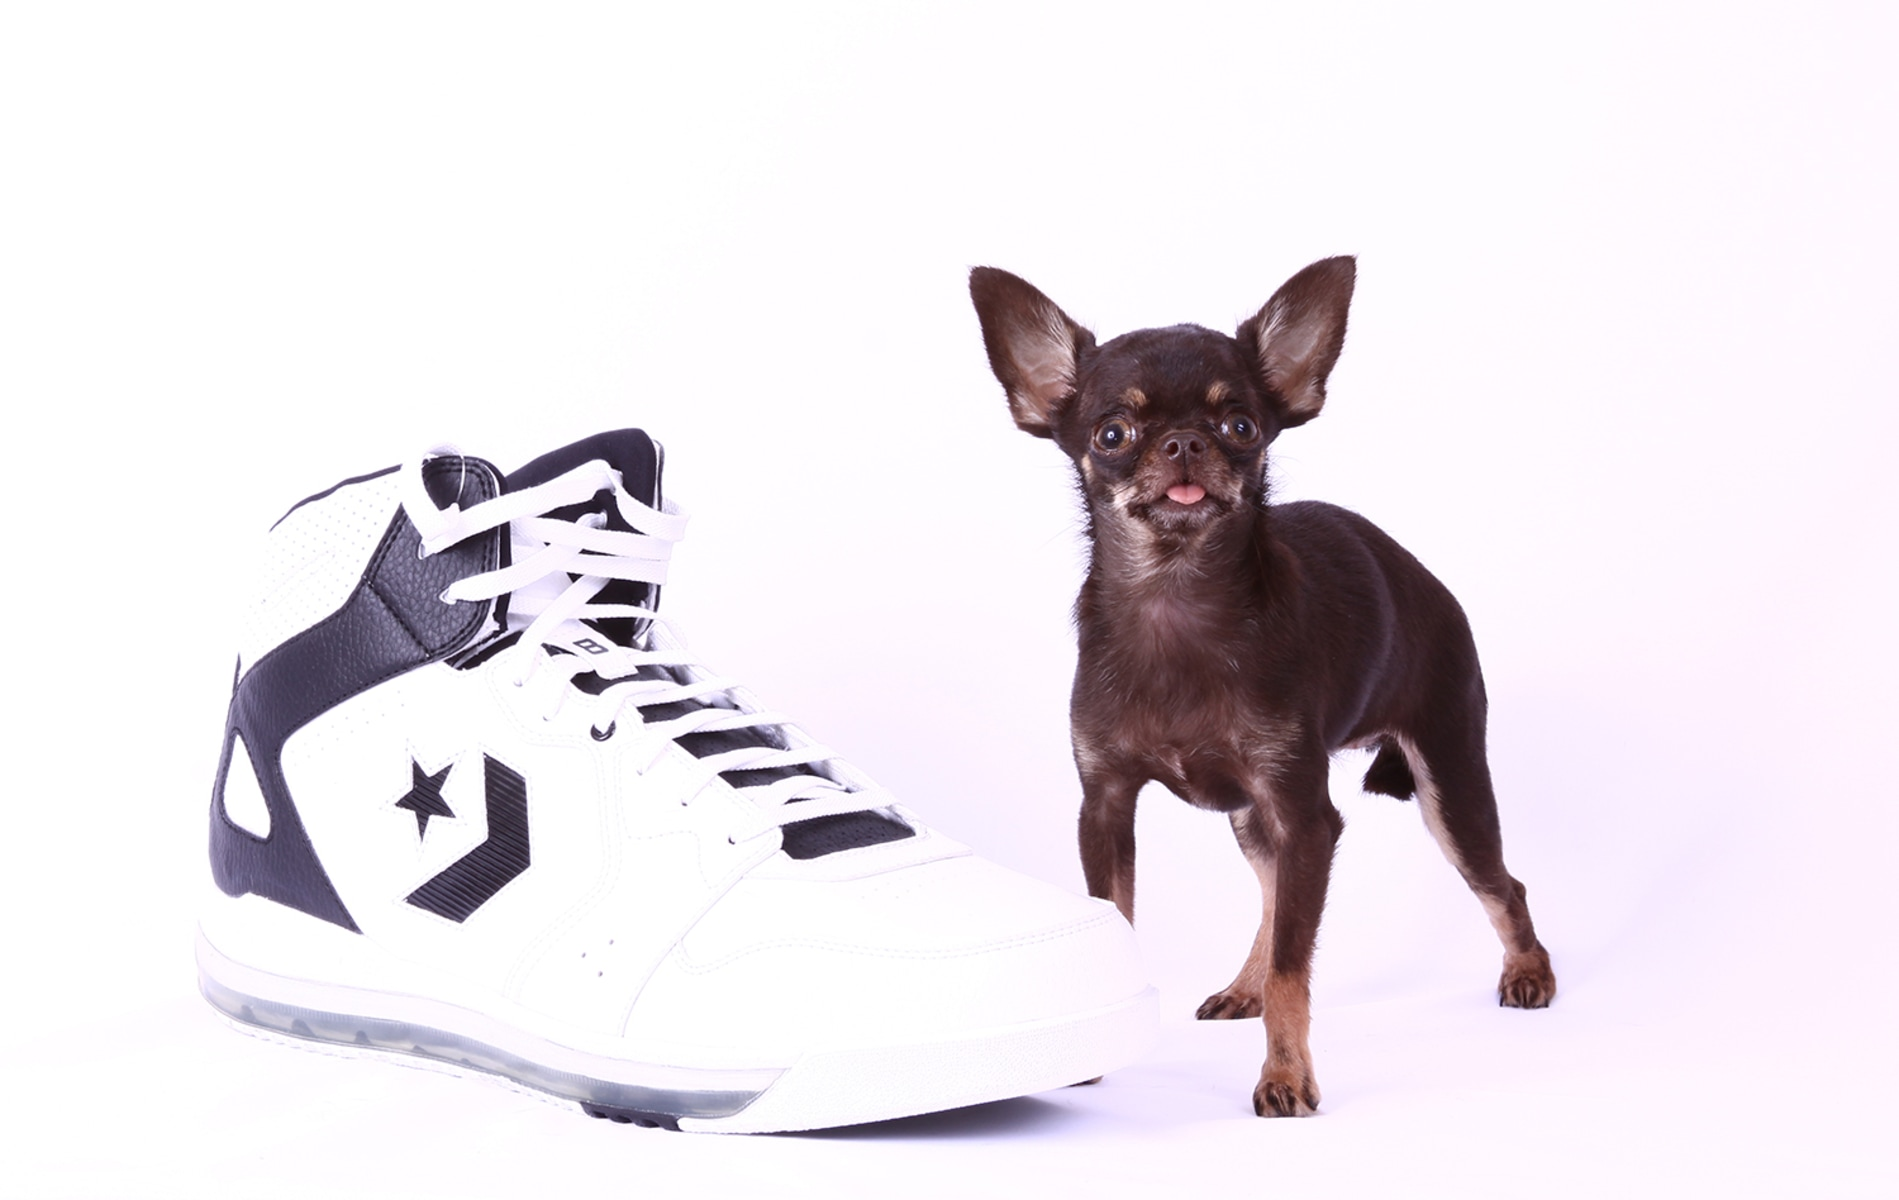 image the smallest dog living in terms of height is a female chihuahua - Smallest Cat In The World Guinness 2014